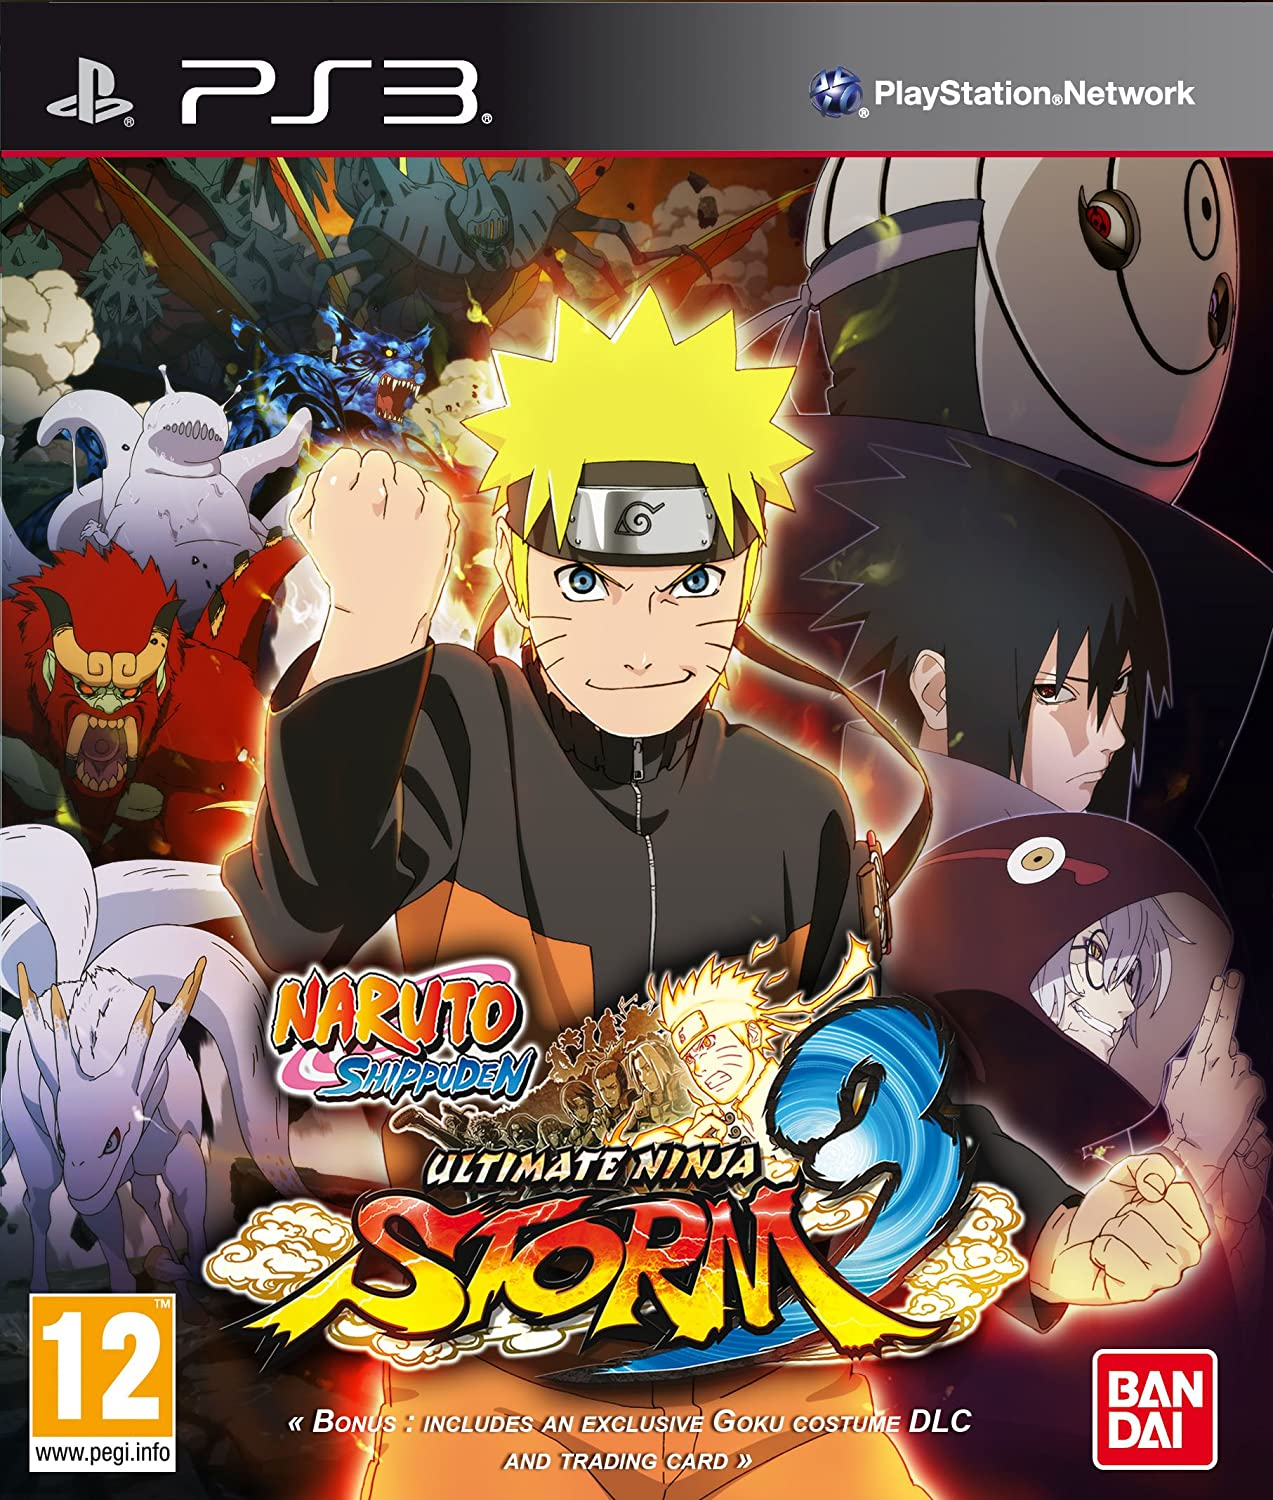 Amazon.com: Naruto Shippuden Ultimate Ninja Storm 3 Sony ...